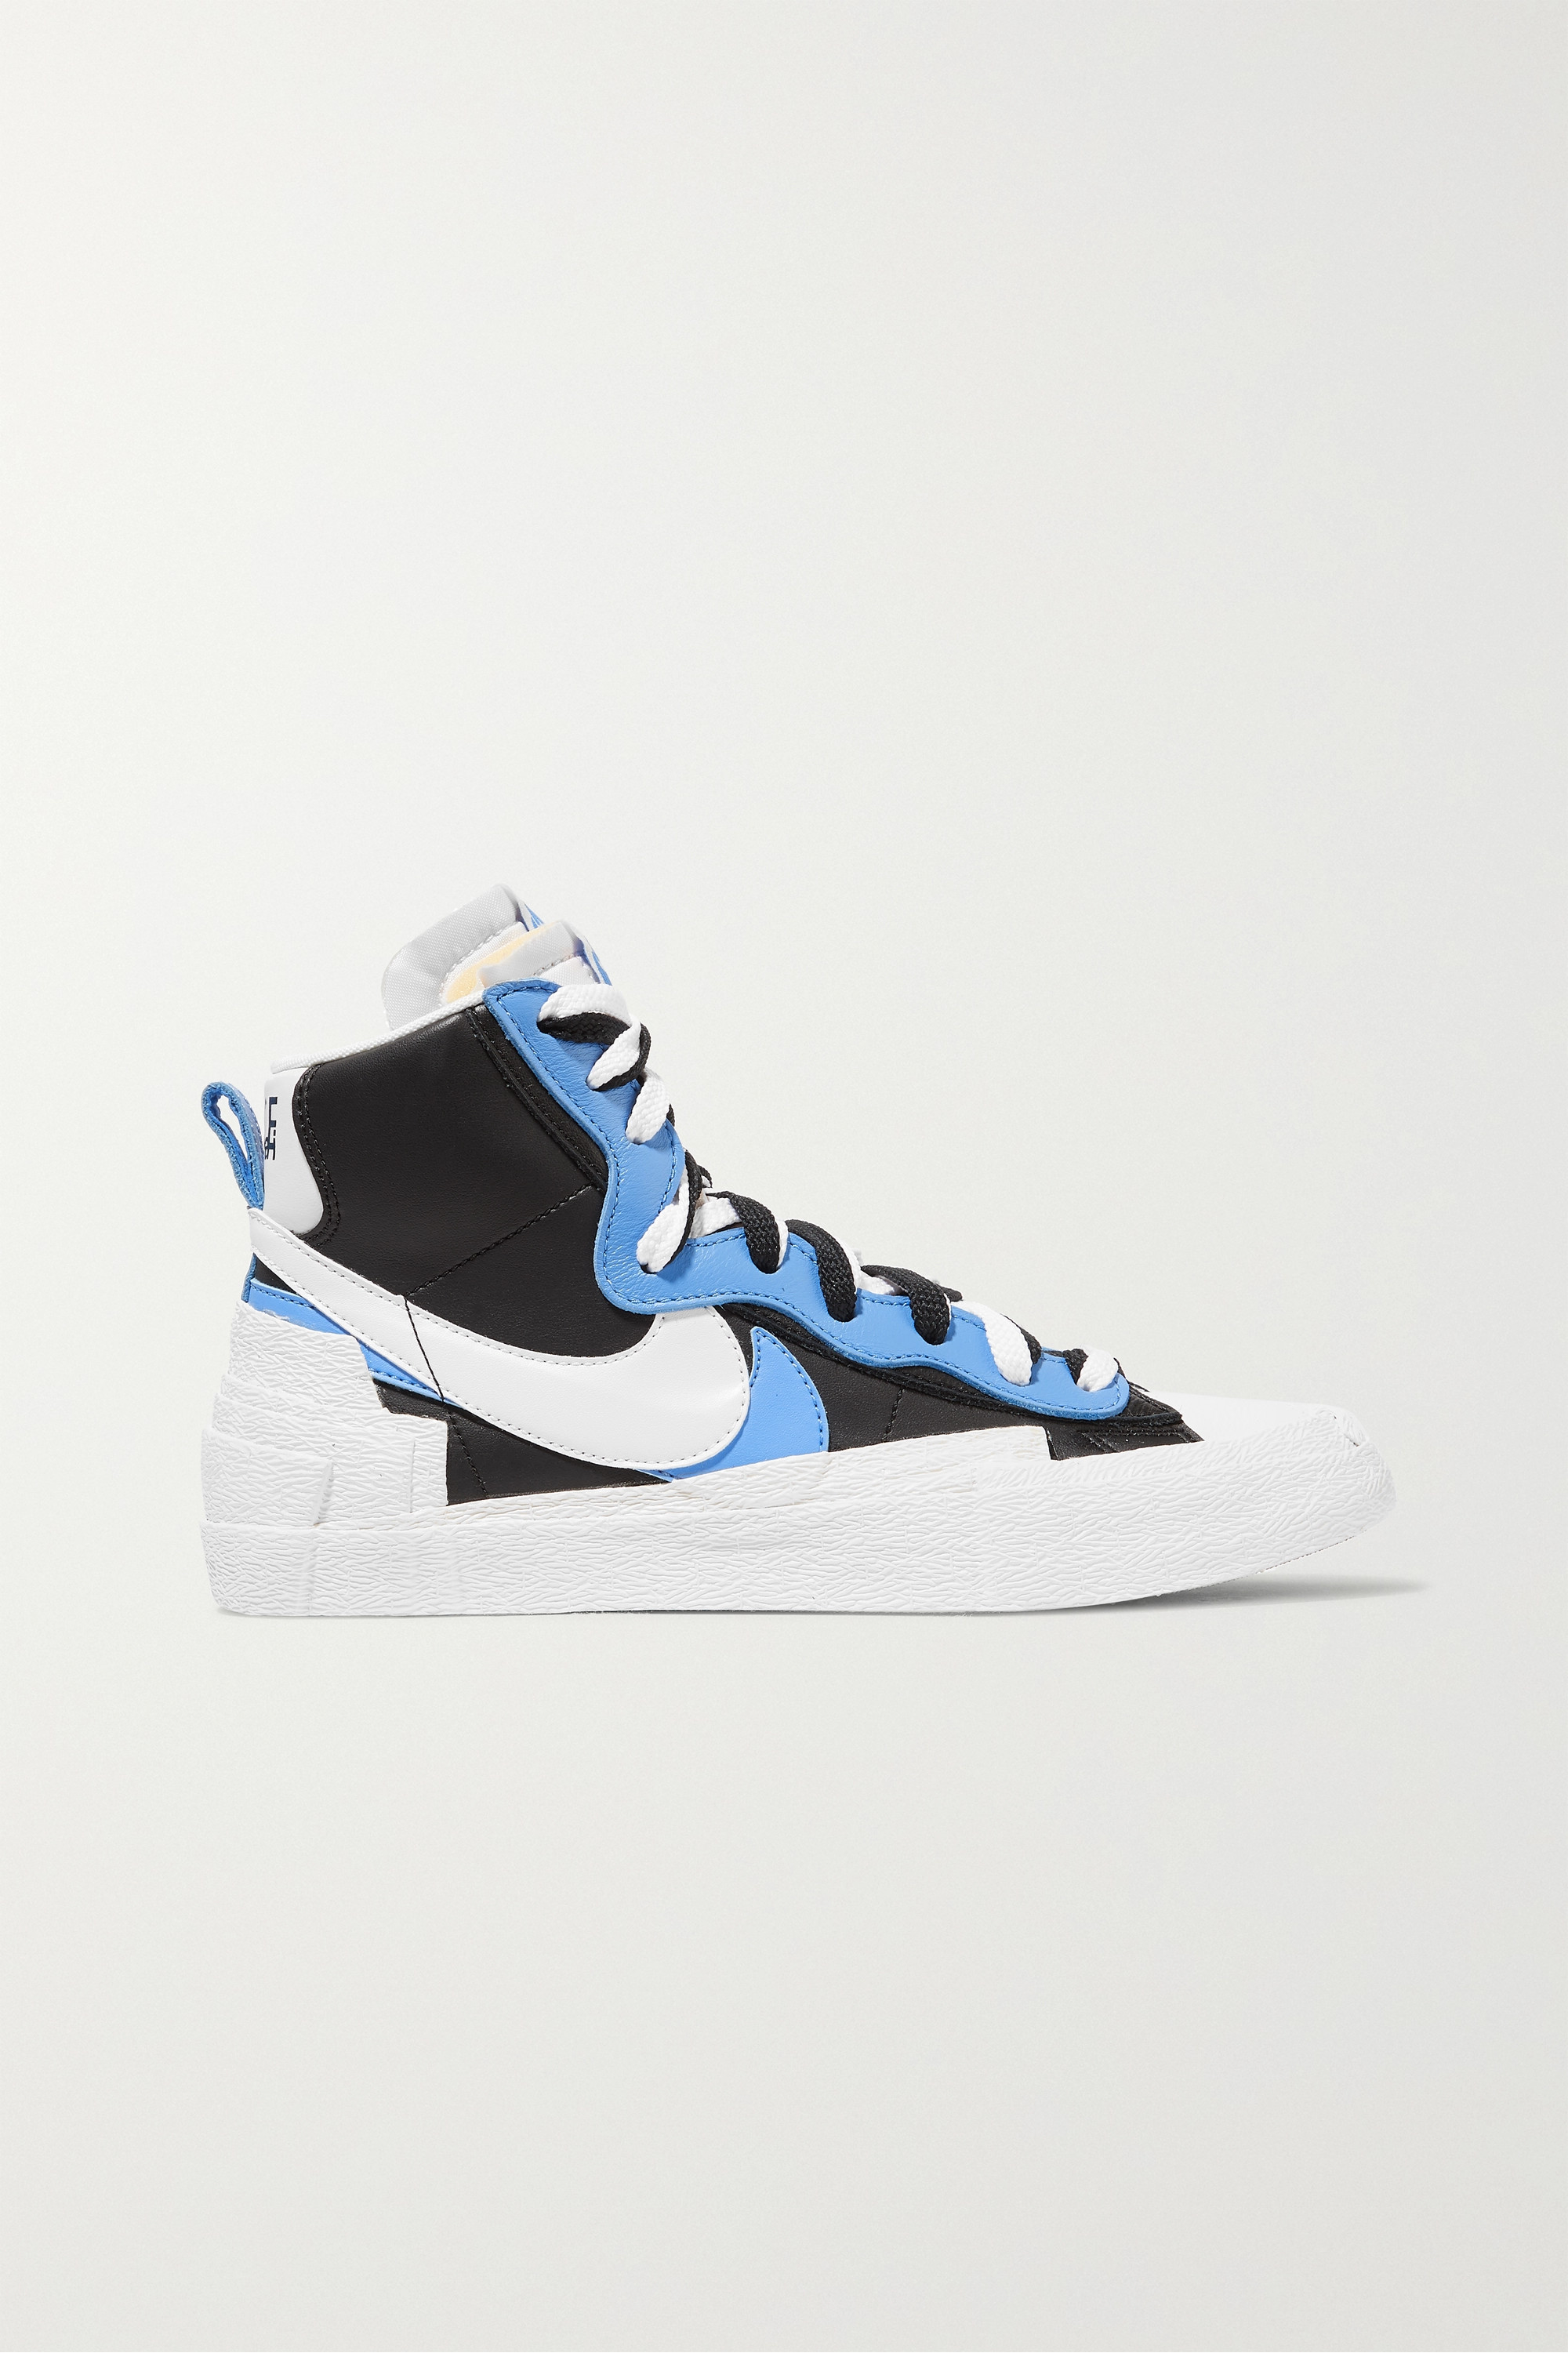 Nike + Sacai Blazer Mid leather high-top sneakers